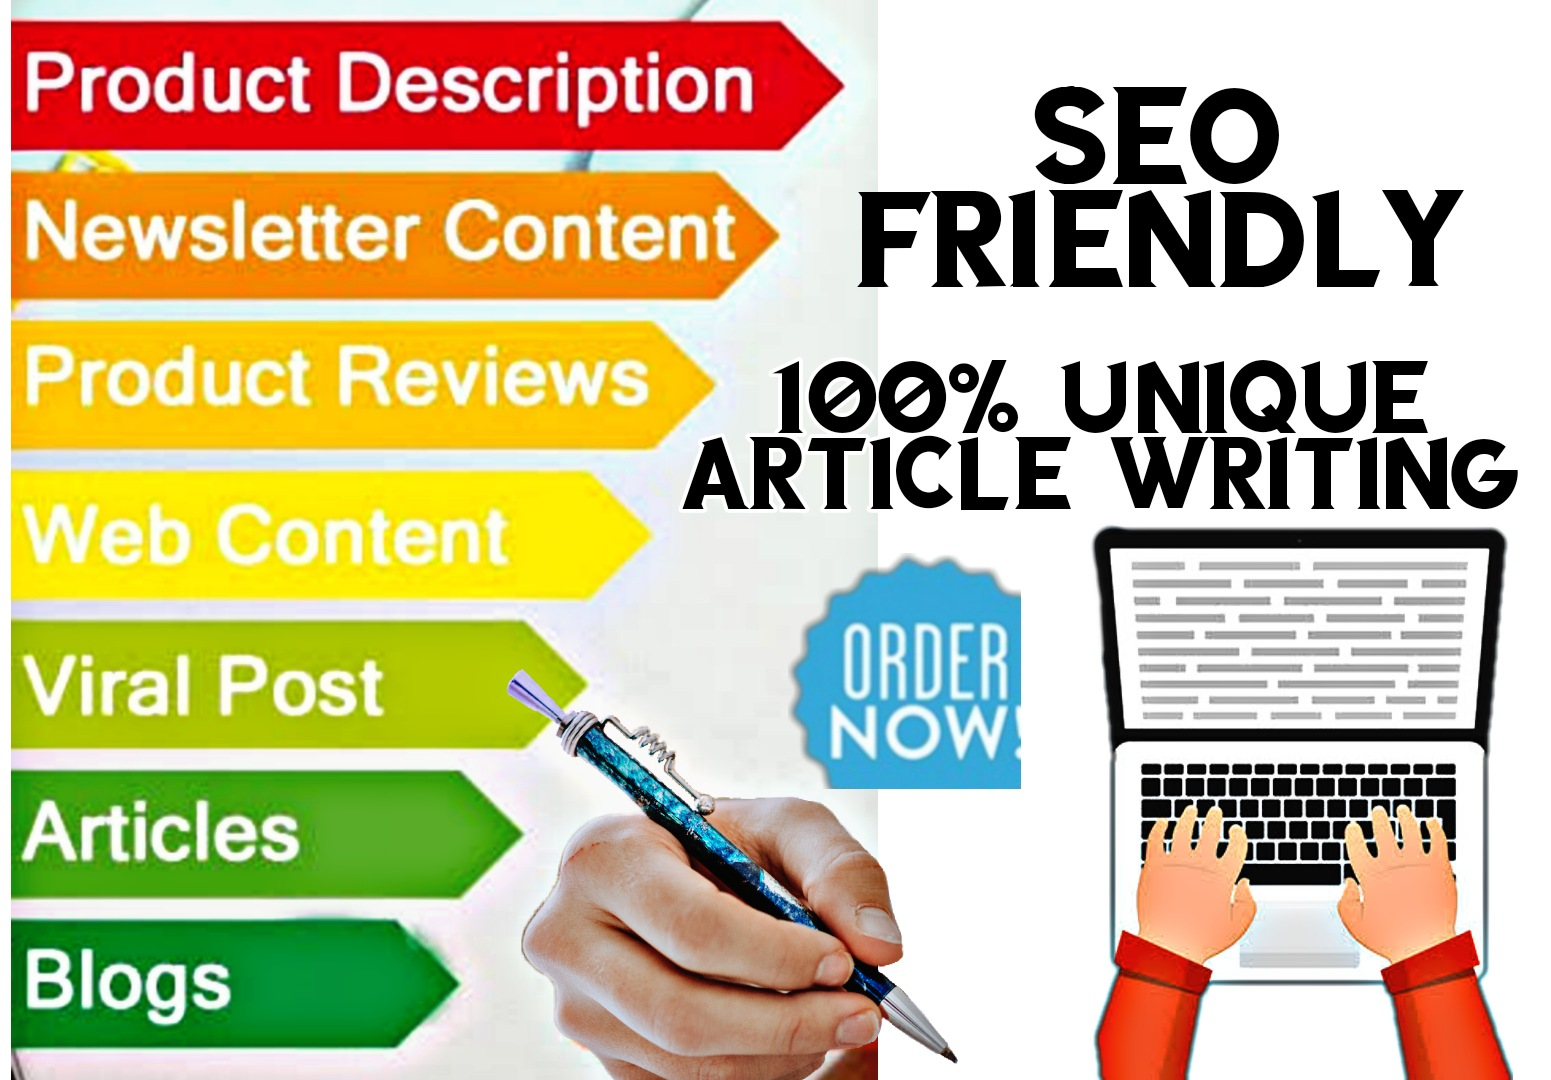 Article writing || 2 X 1000 Words High Quality Unique SEO friendly Content/Article For your nishe